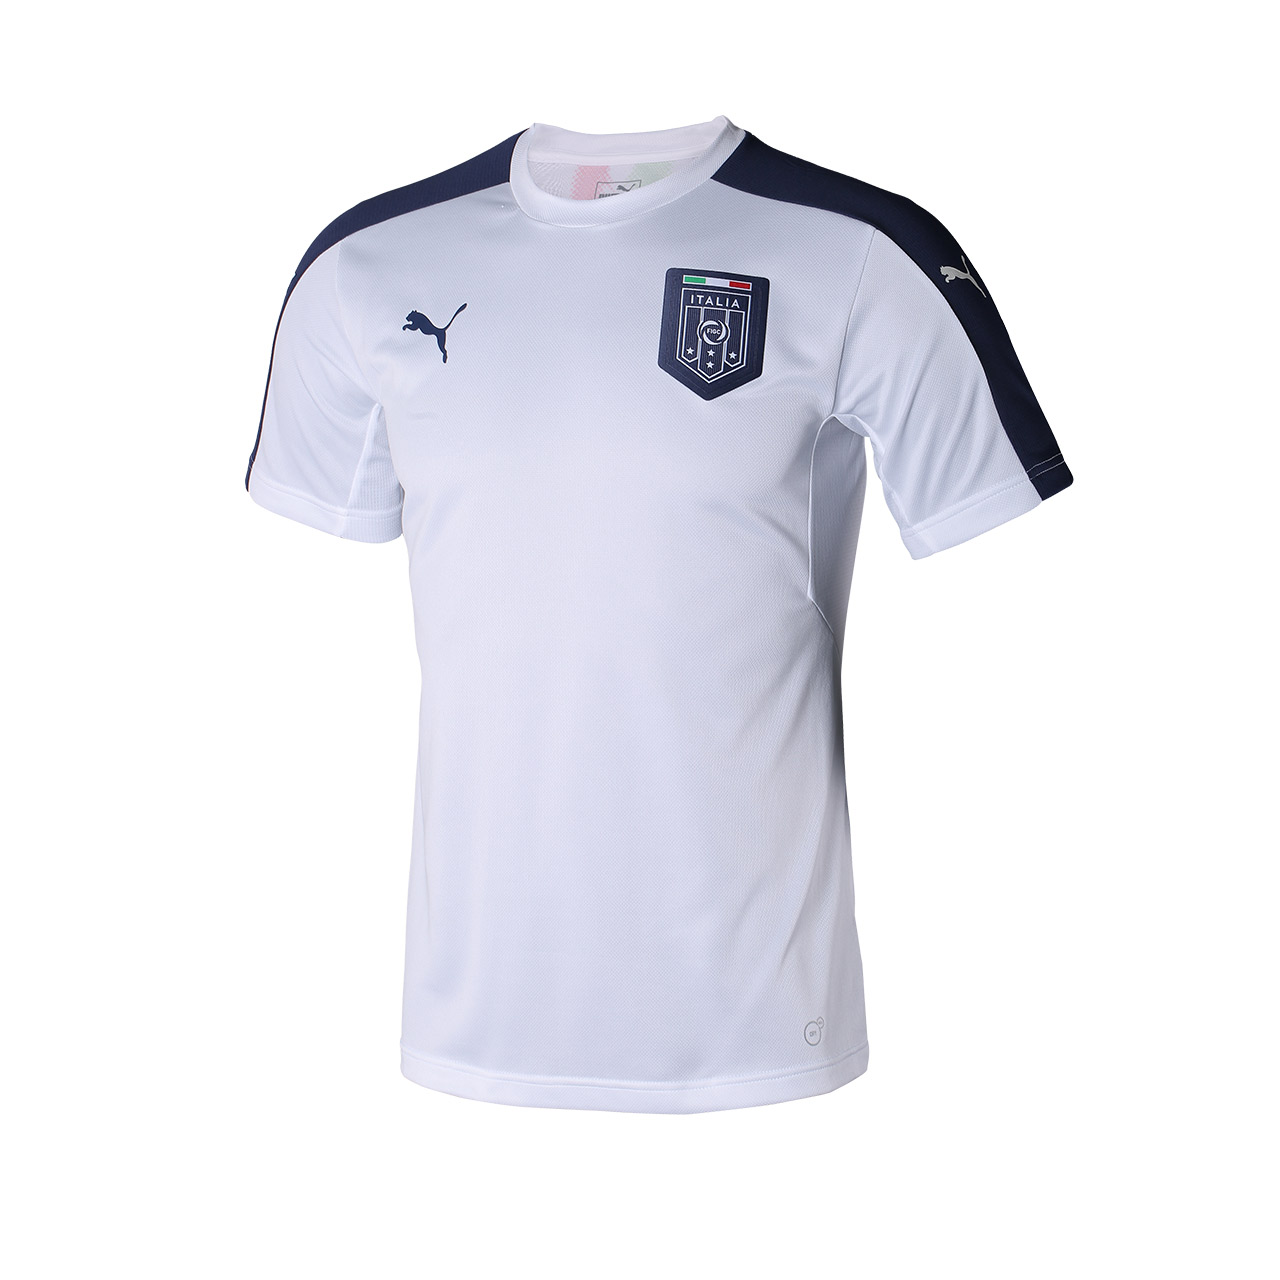 77d0537f3 Genuine PUMA new Italian football shirt training suit men s sports  short-sleeved T-shirt. Zoom · lightbox moreview · lightbox moreview ...